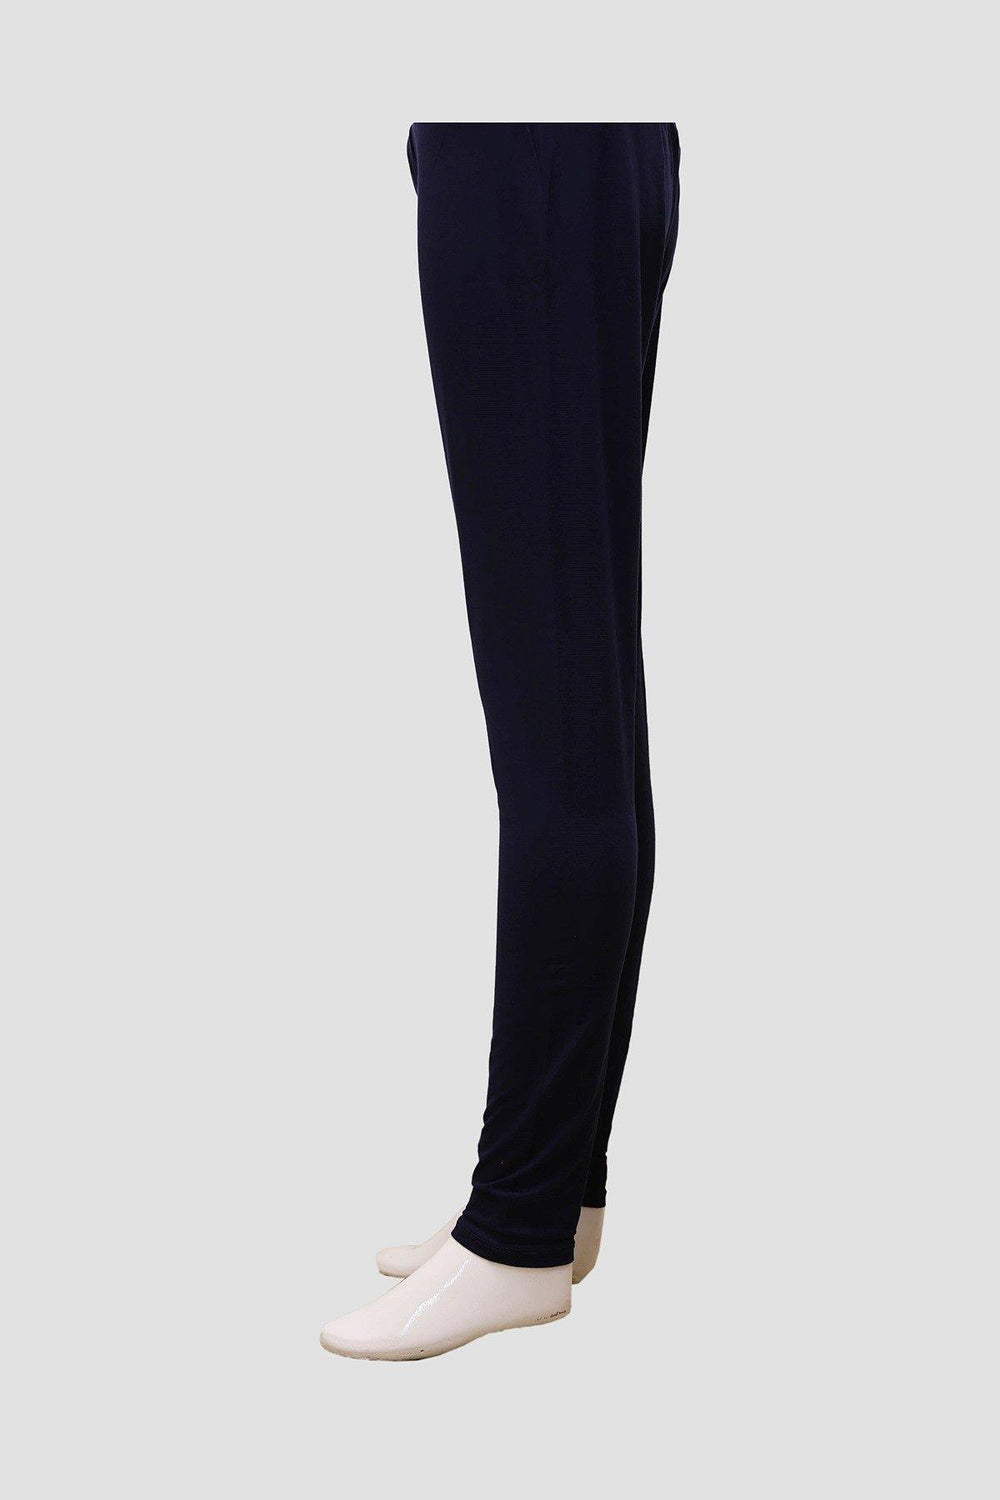 Cotton Tights - Navy Blue